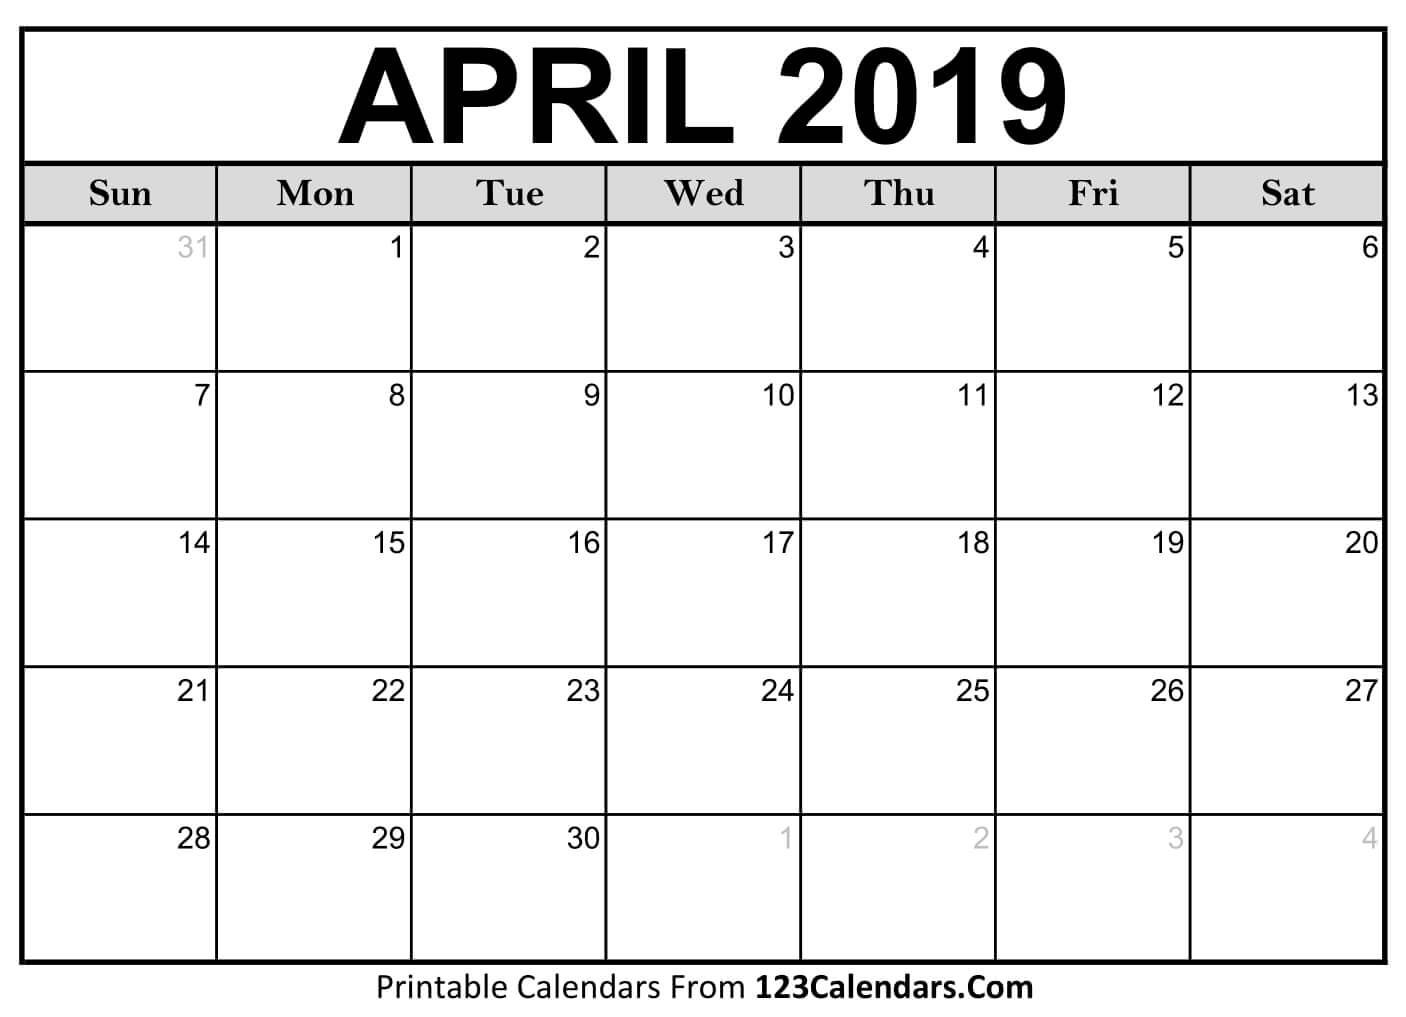 Printable April 2019 Calendar Templates - 123Calendars Calendar Of 2019 April